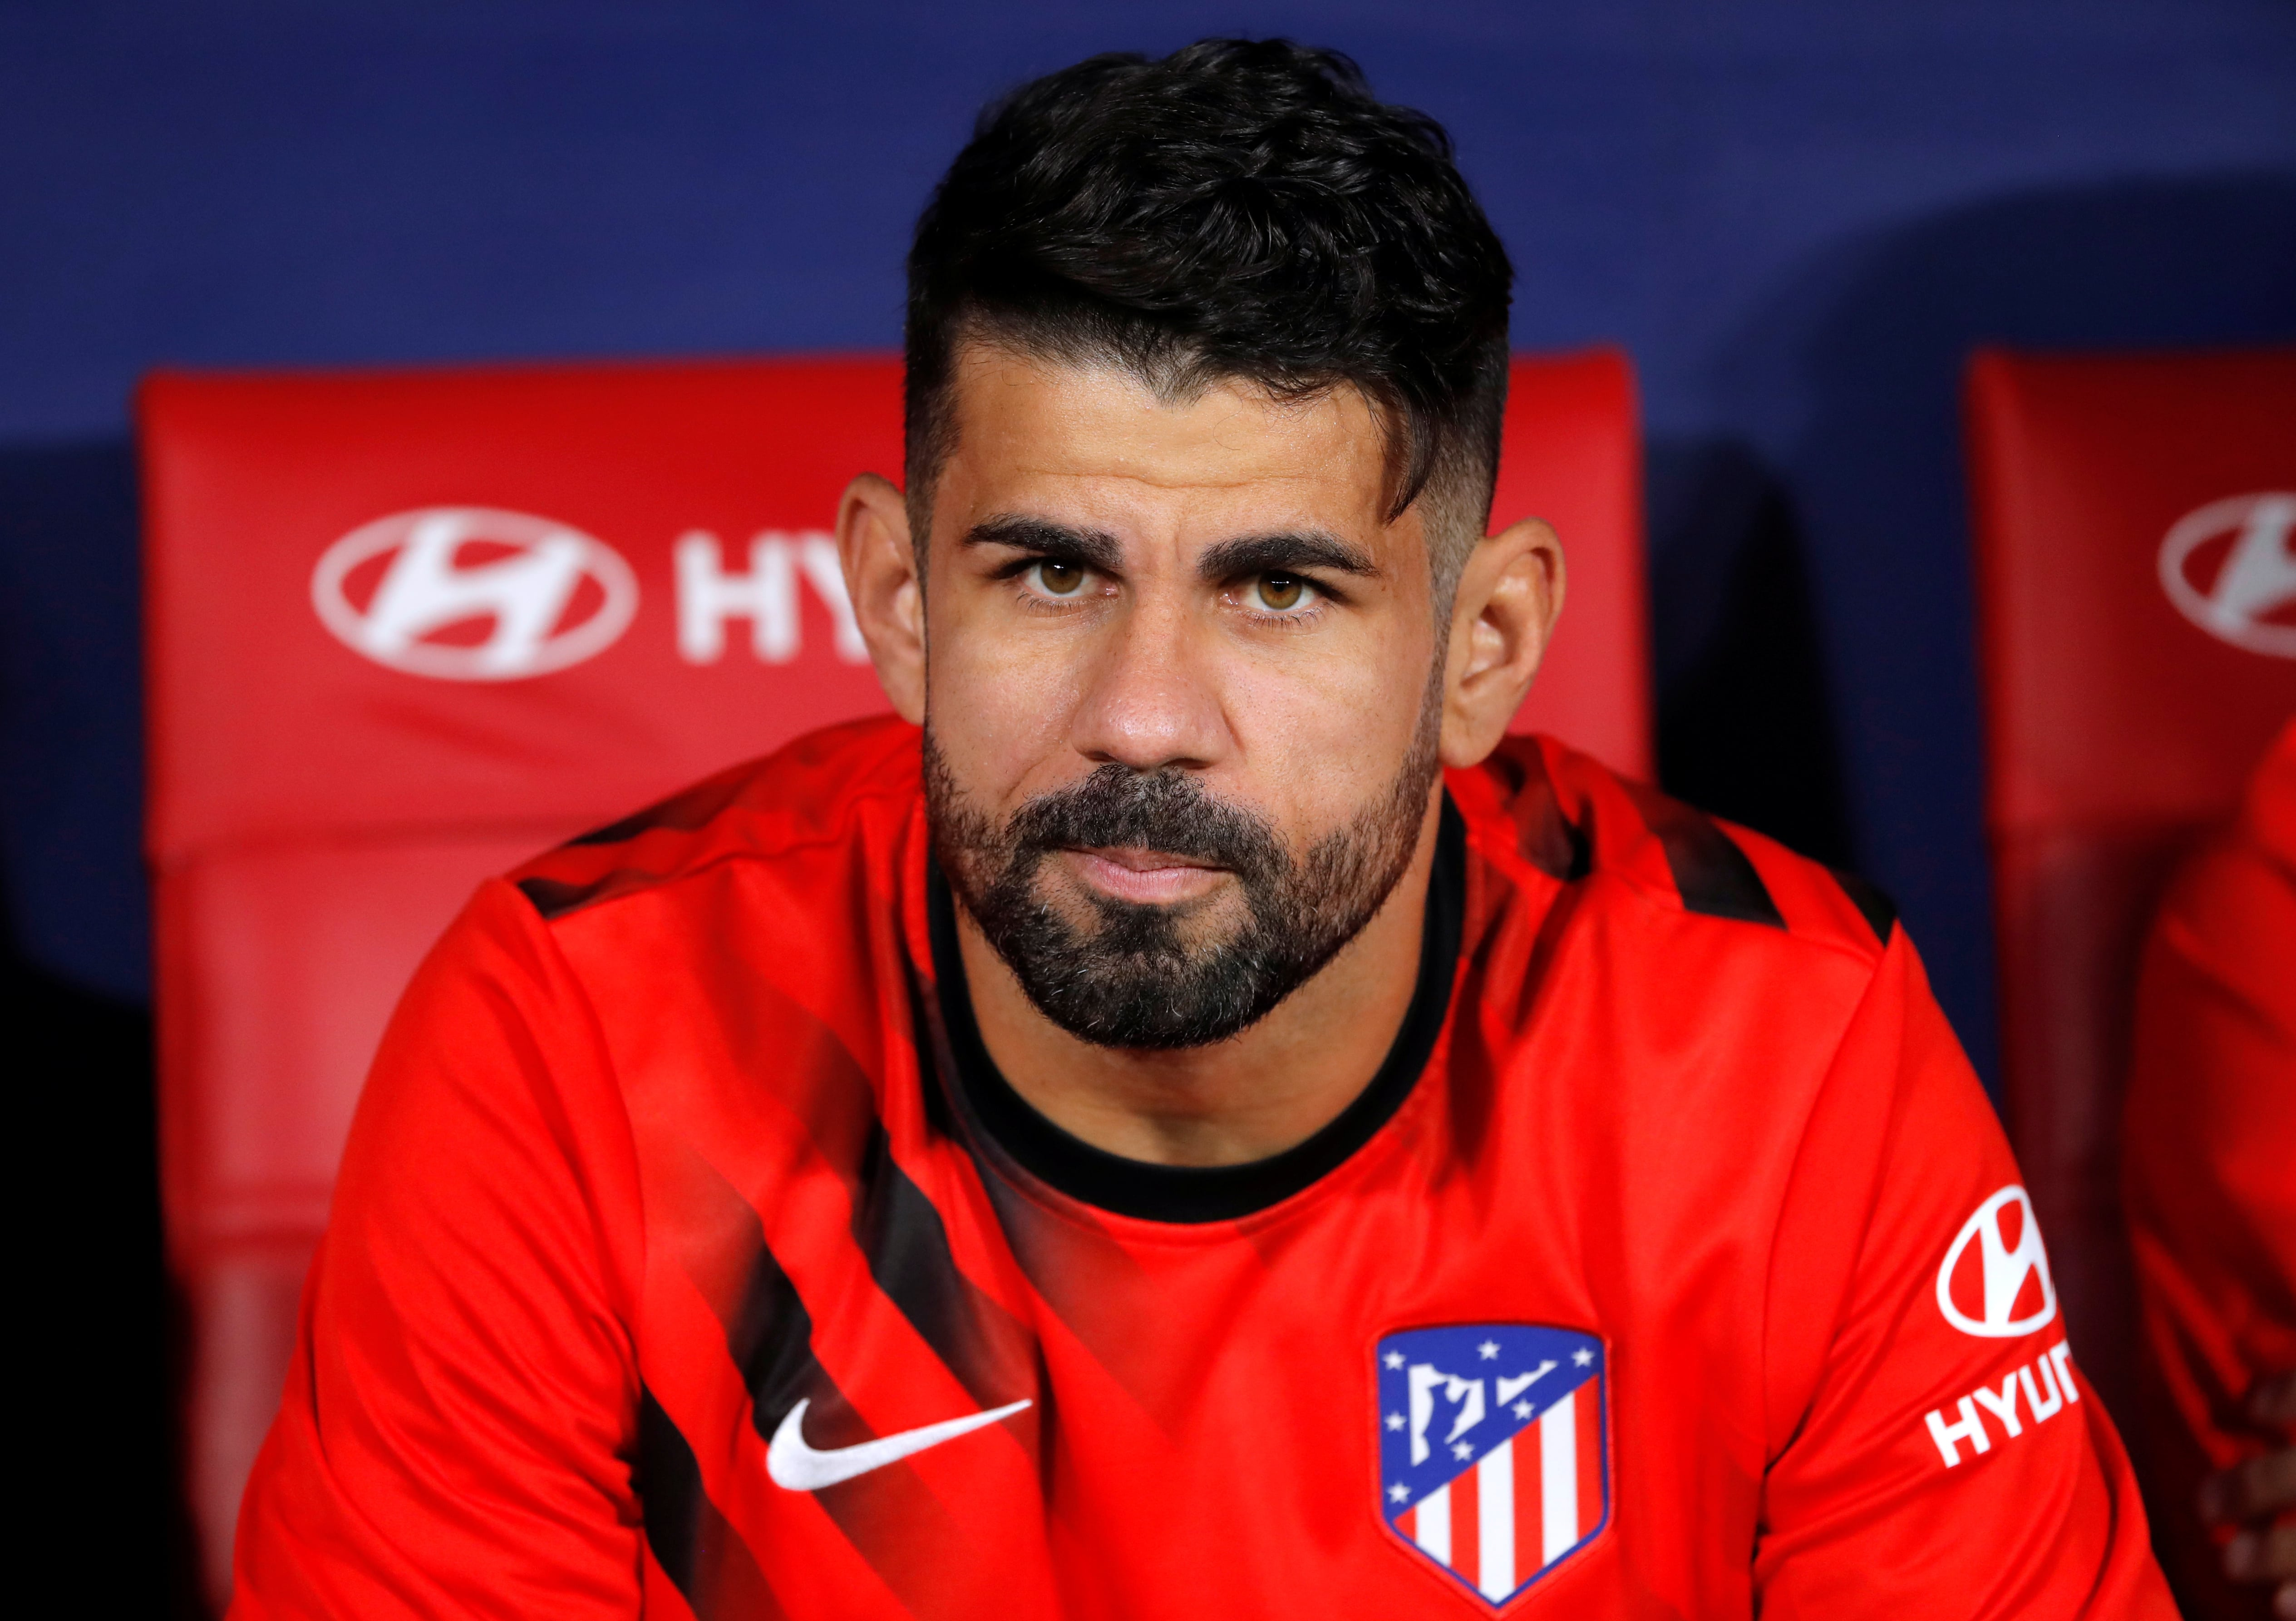 Atletico Madrid ace Diego Costa ruled out for three months due to neck injury